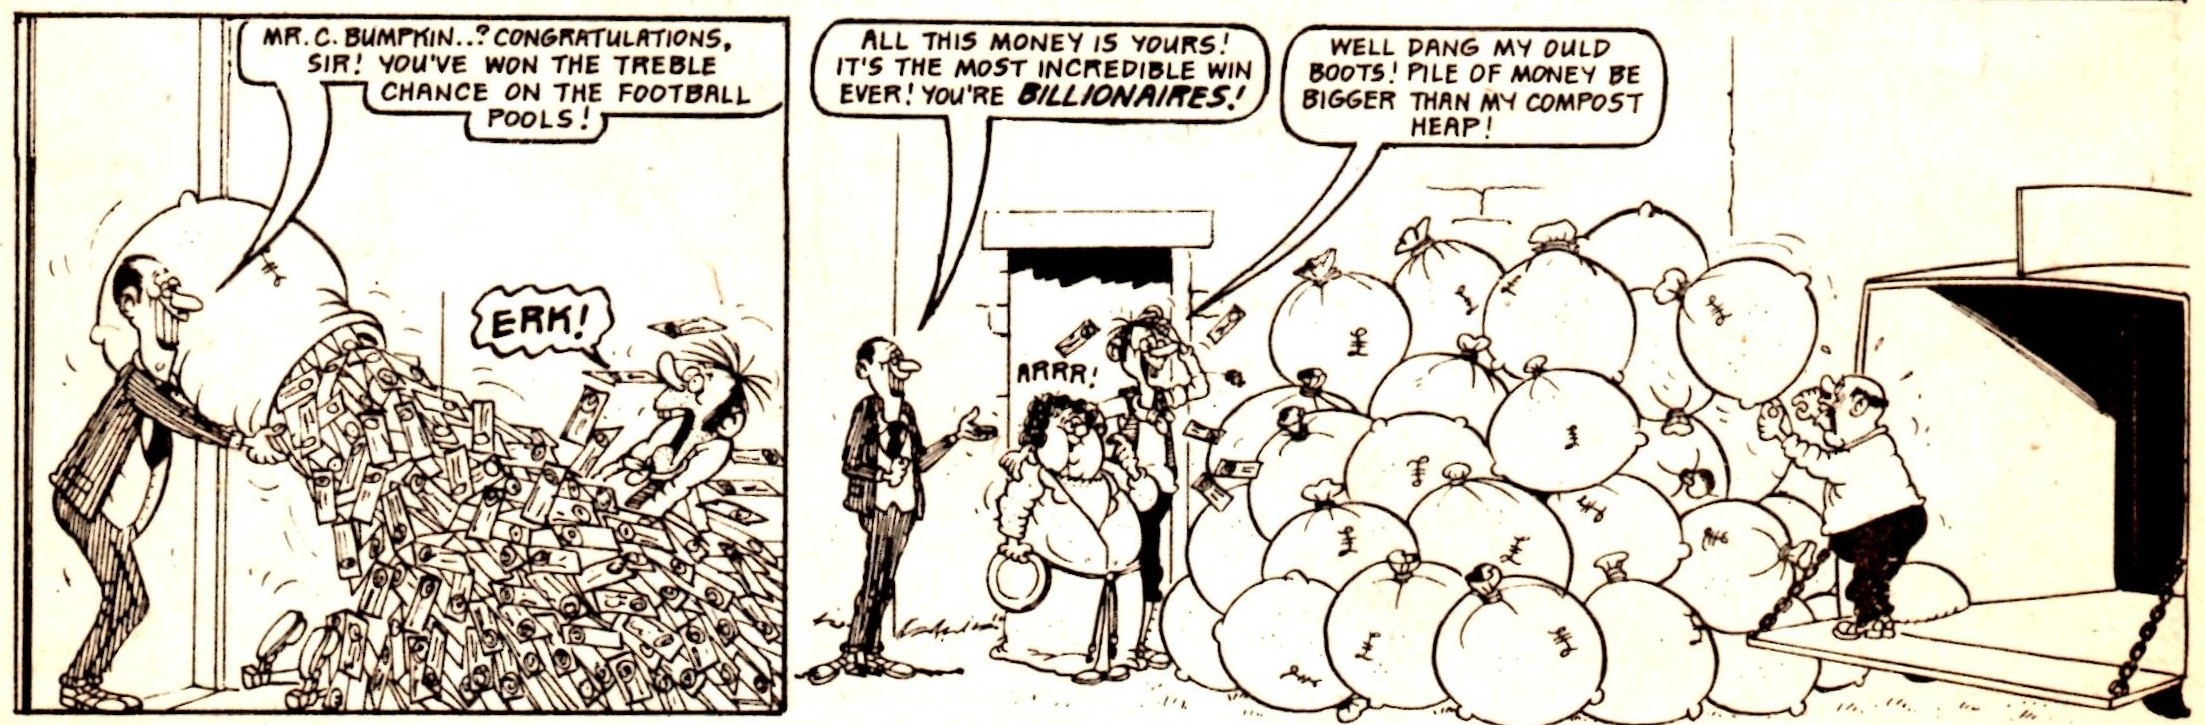 The Bumpkin Billionaires, from Whoopee! 9 March 1974: Mike Lacey (artist)